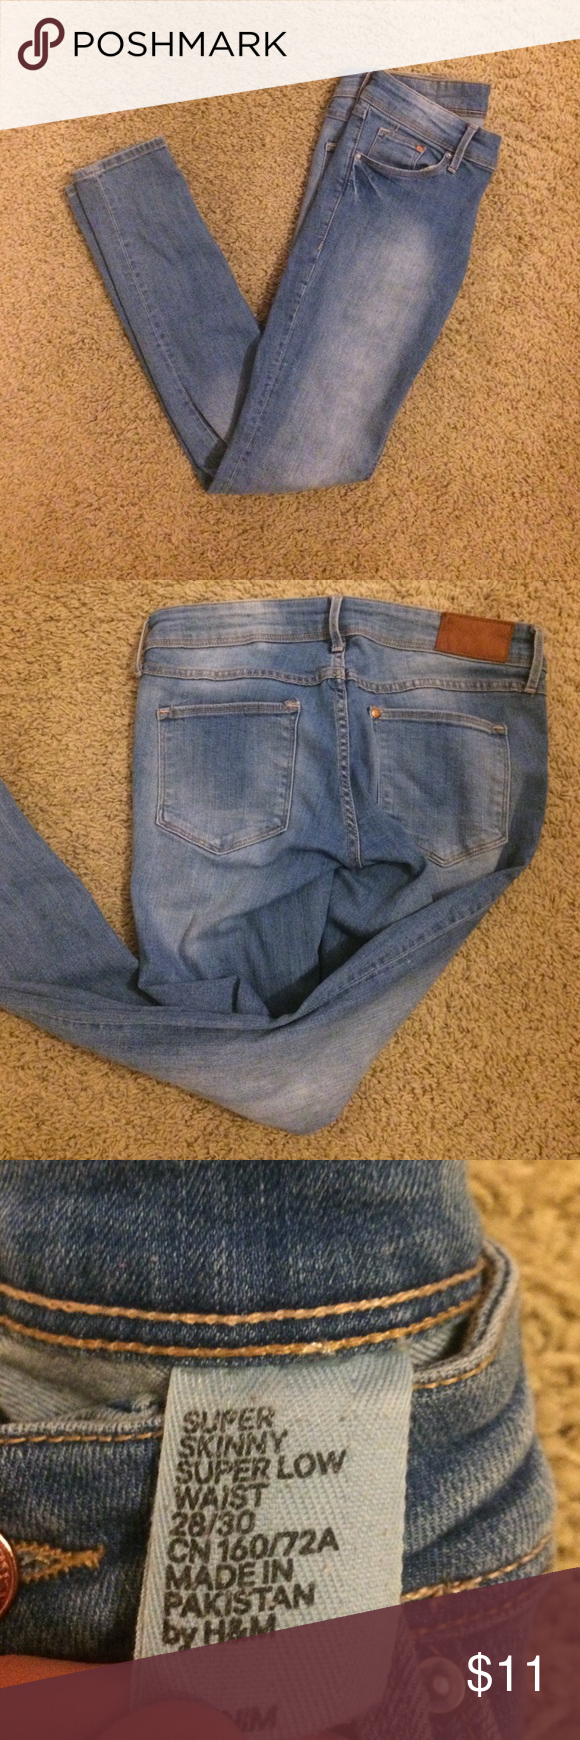 H&M Skinny Light Colored Jeans Size 28/30 Distressed color, worn some but nice condition. Skinny fit. Jeans